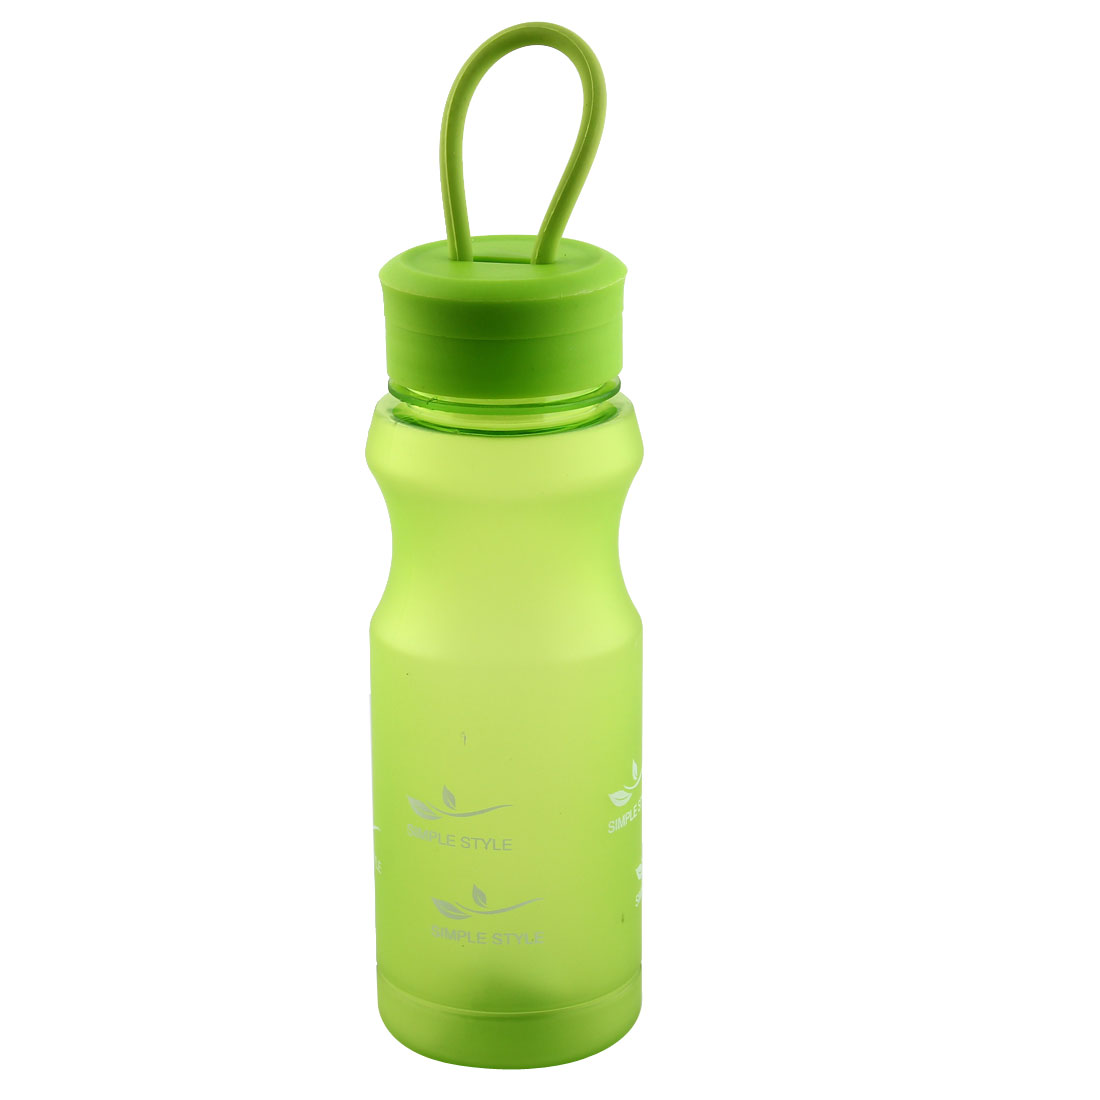 Outdoor Travel Plastic Letter Pattern Running Water Bottle Frosted Tea Cup Mug Biking Sports Kettle Green 500ml